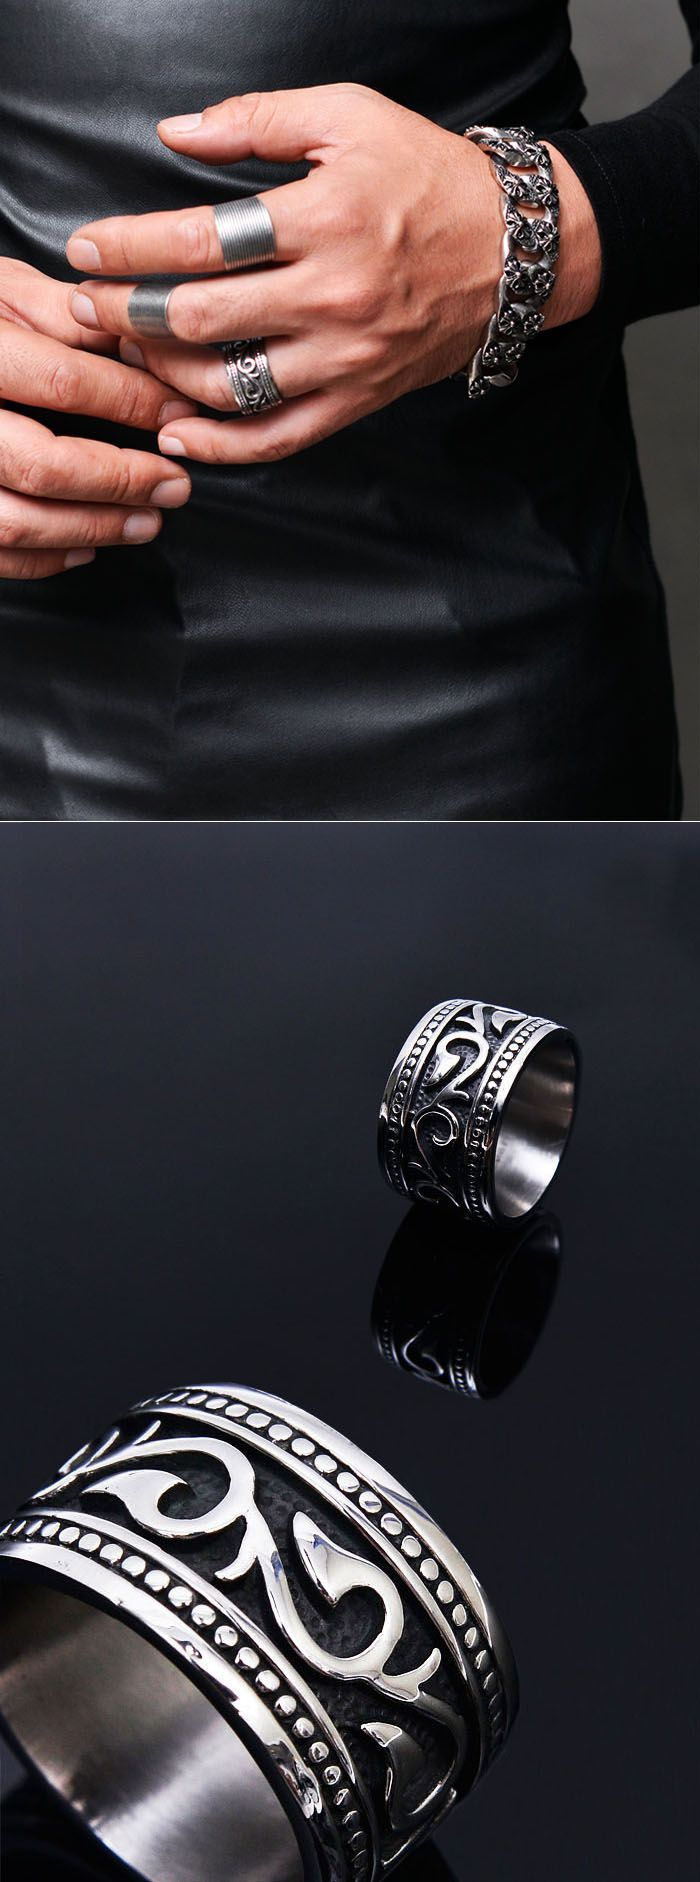 2019 year look- Ring mens stylish